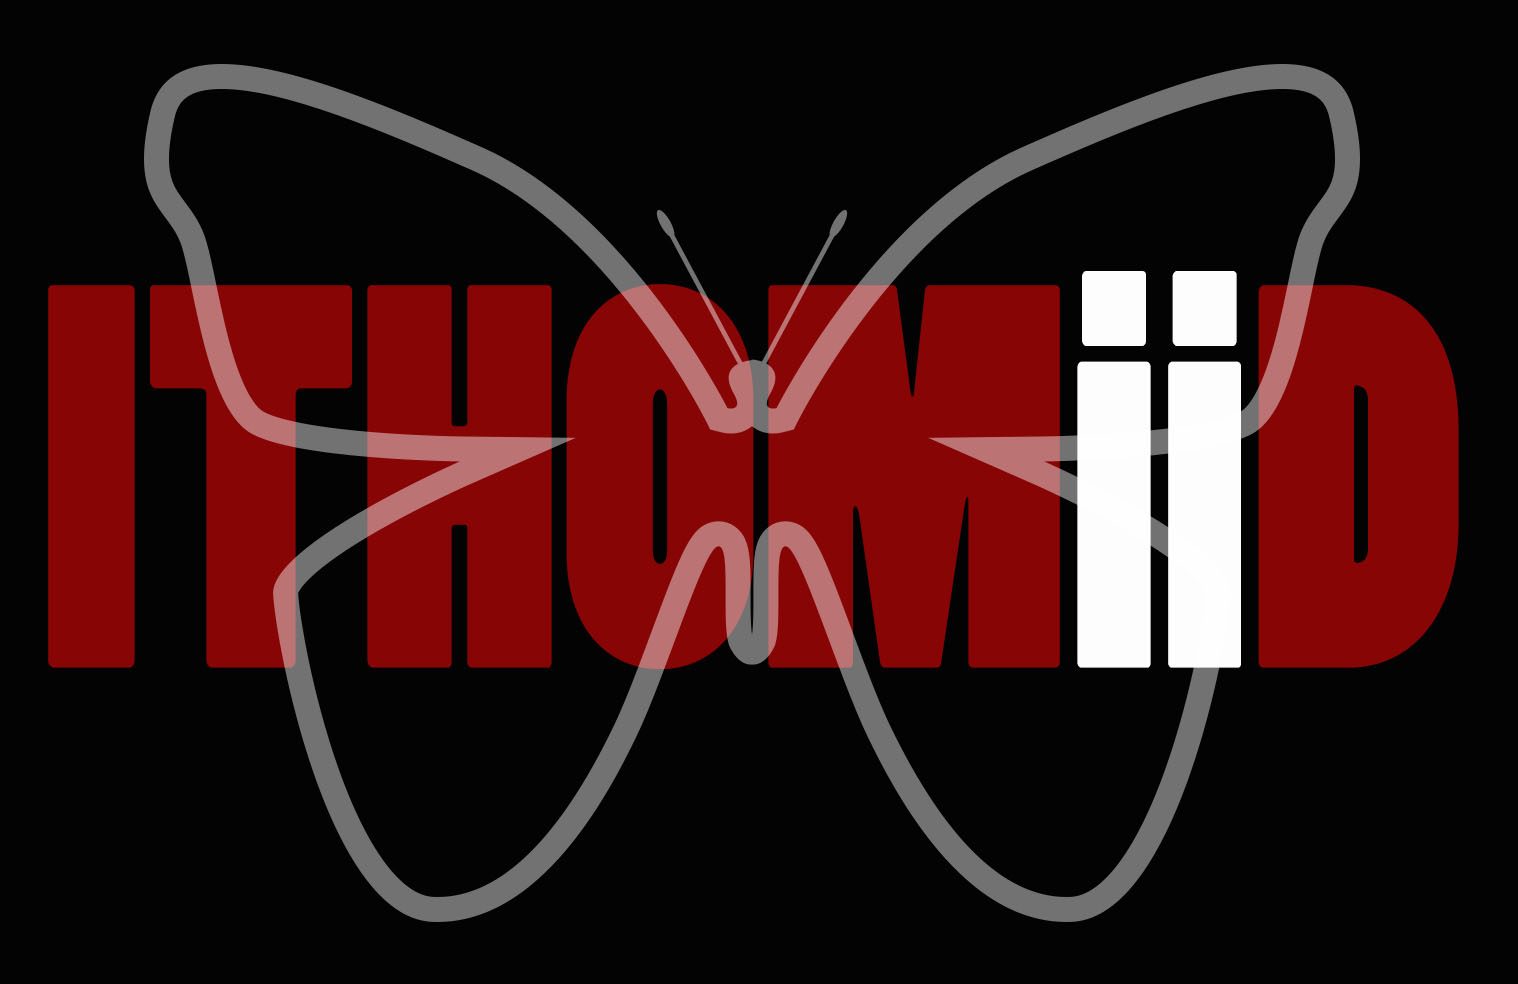 ithomiid-logo-with-butterfly.jpg